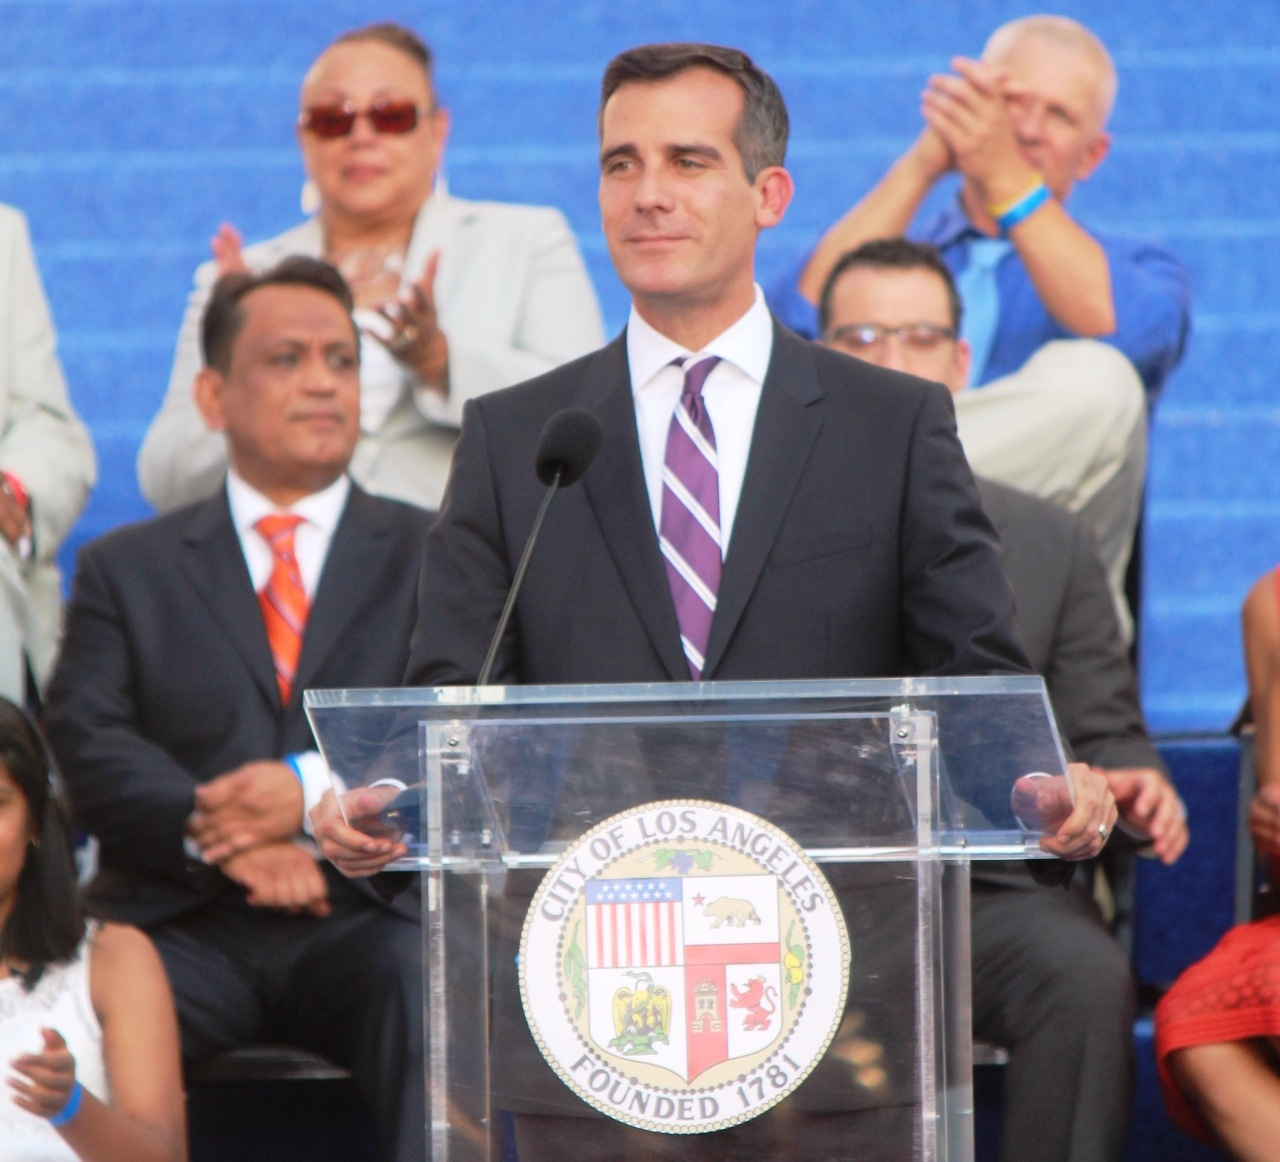 'It's Time to Cancel Everything': LA Mayor Issues Stricter Stay-at-Home Order